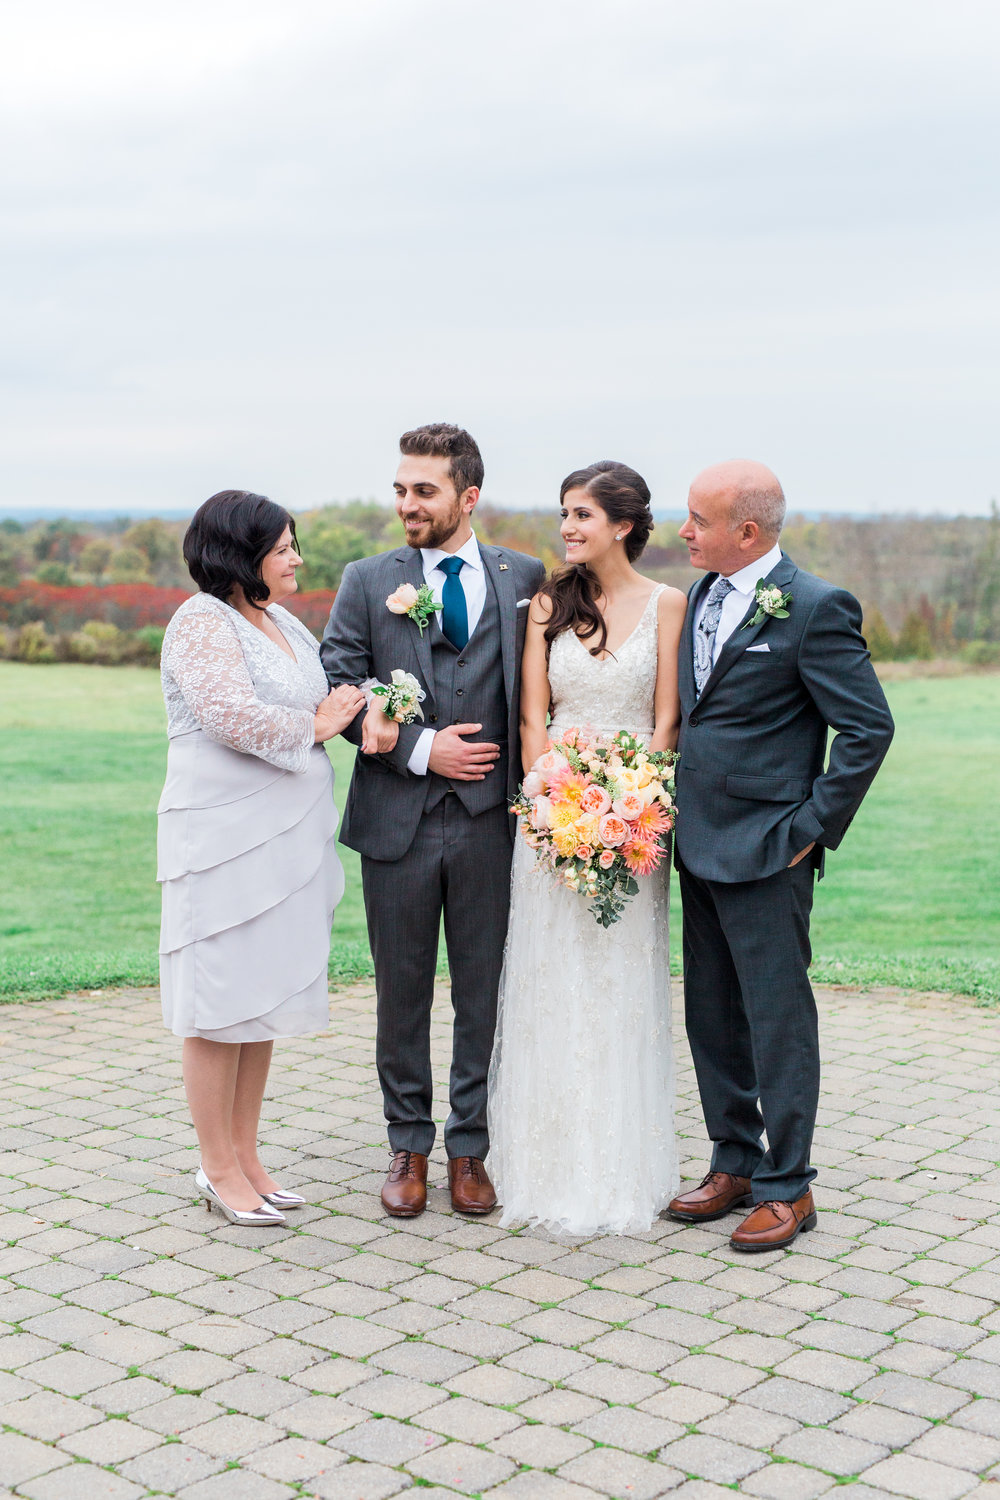 Amir-Golbazi-Danielle-Giroux-Photography_Toronto-Wedding_Cedarwood_Rachel-Paul_362.jpg